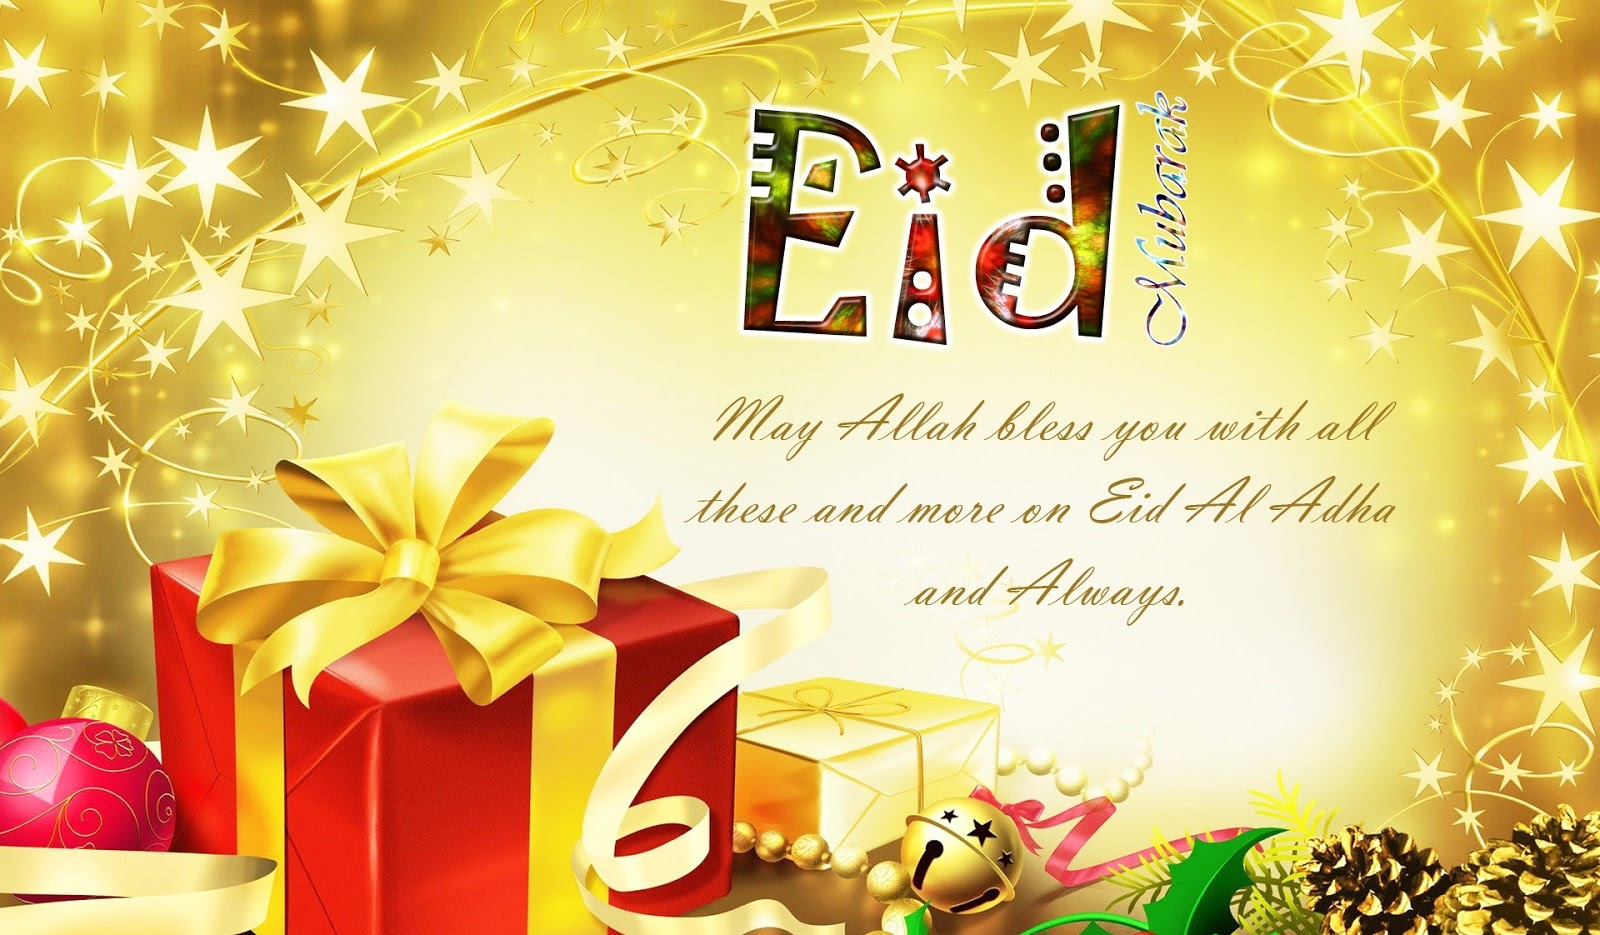 Must see Facebook Cover 2016 Ied Wallpaper - Eid-Mubarak-Images-Eid-Mubarak-photo-comments-Eid-mubarak-wishes-comments-Eid-Mubarak-2015-wishes-images-Eid-Mubarak-facebook-covers-eid-Mubarak-2015-facebook-covers  Photograph_58868 .jpg